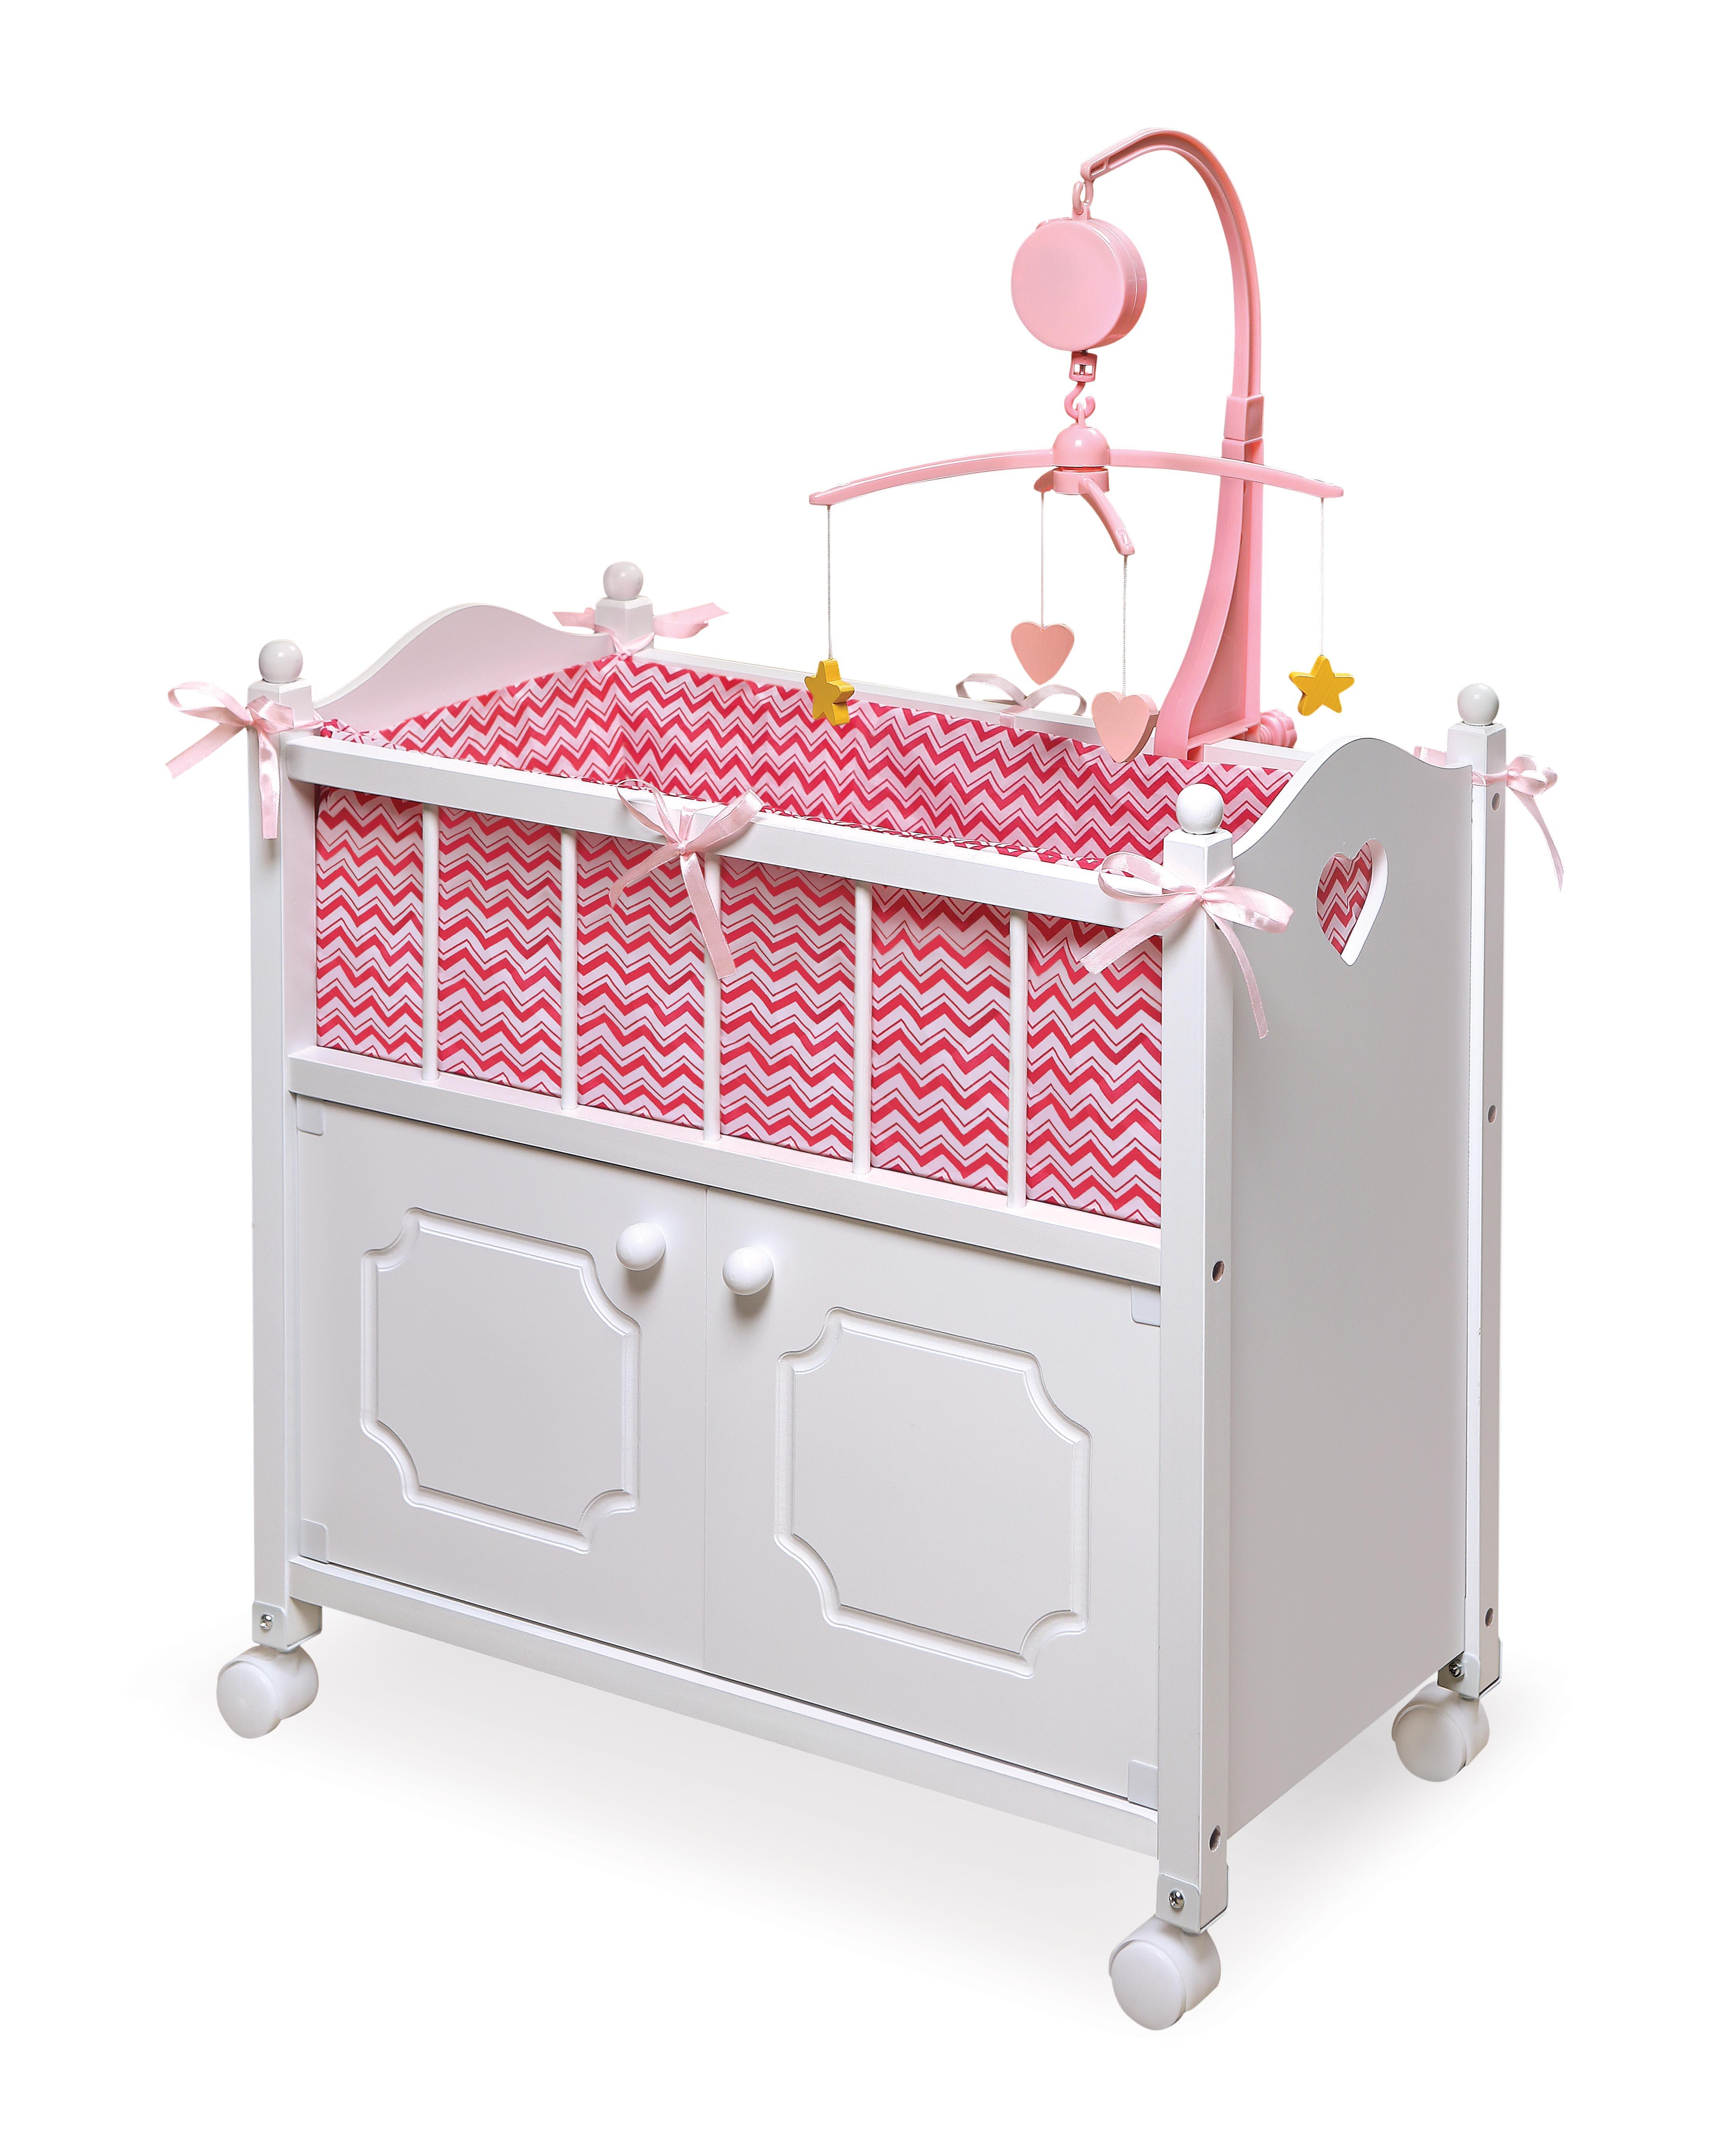 Lovely Doll Crib With Cabinet, Bedding, U0026 Mobile   Chevron Print   [17291]